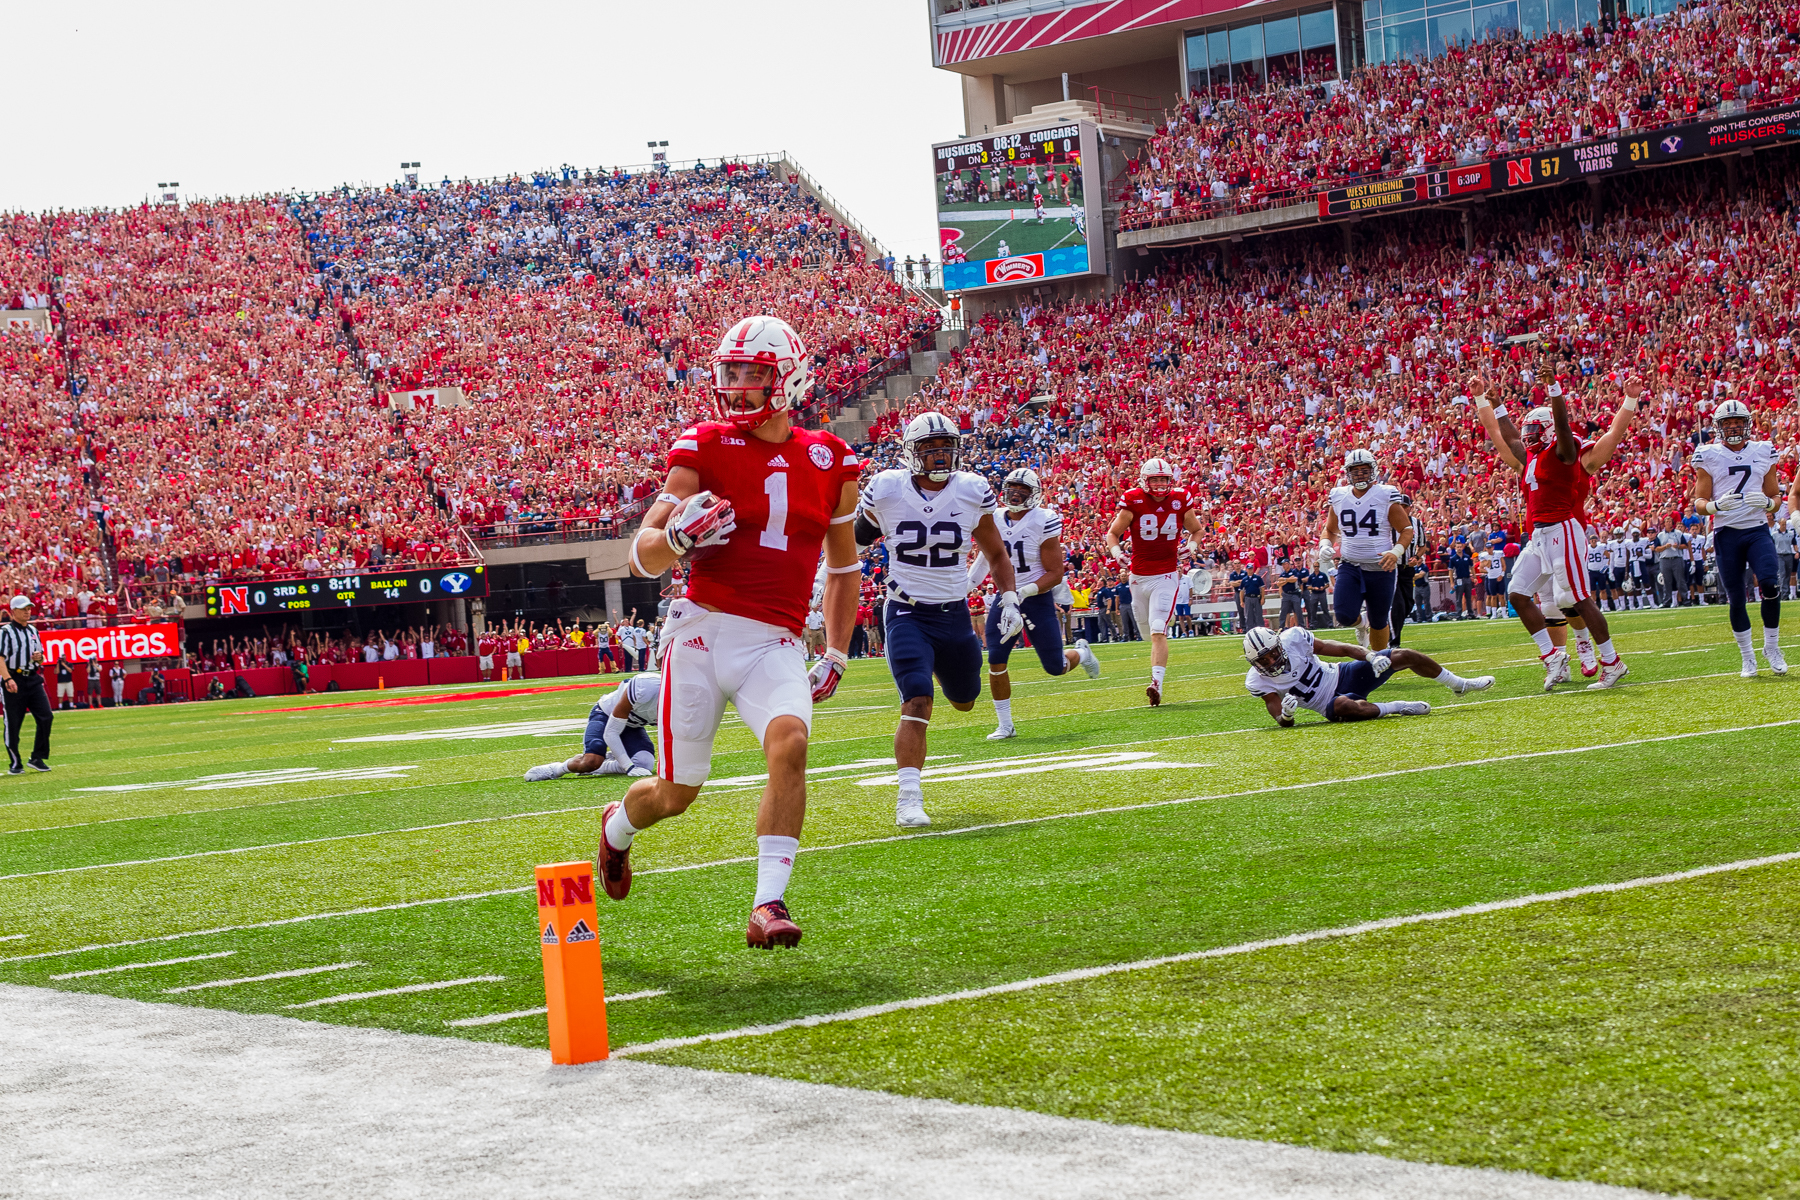 Jordan Westerkamp #1 of the Nebraska Cornhuskers breaks a tackle to score a touchdown in the first quarter of Nebraska's 33-28 loss to BYU on Sept. 5, 2015. Photo by Aaron Babcock